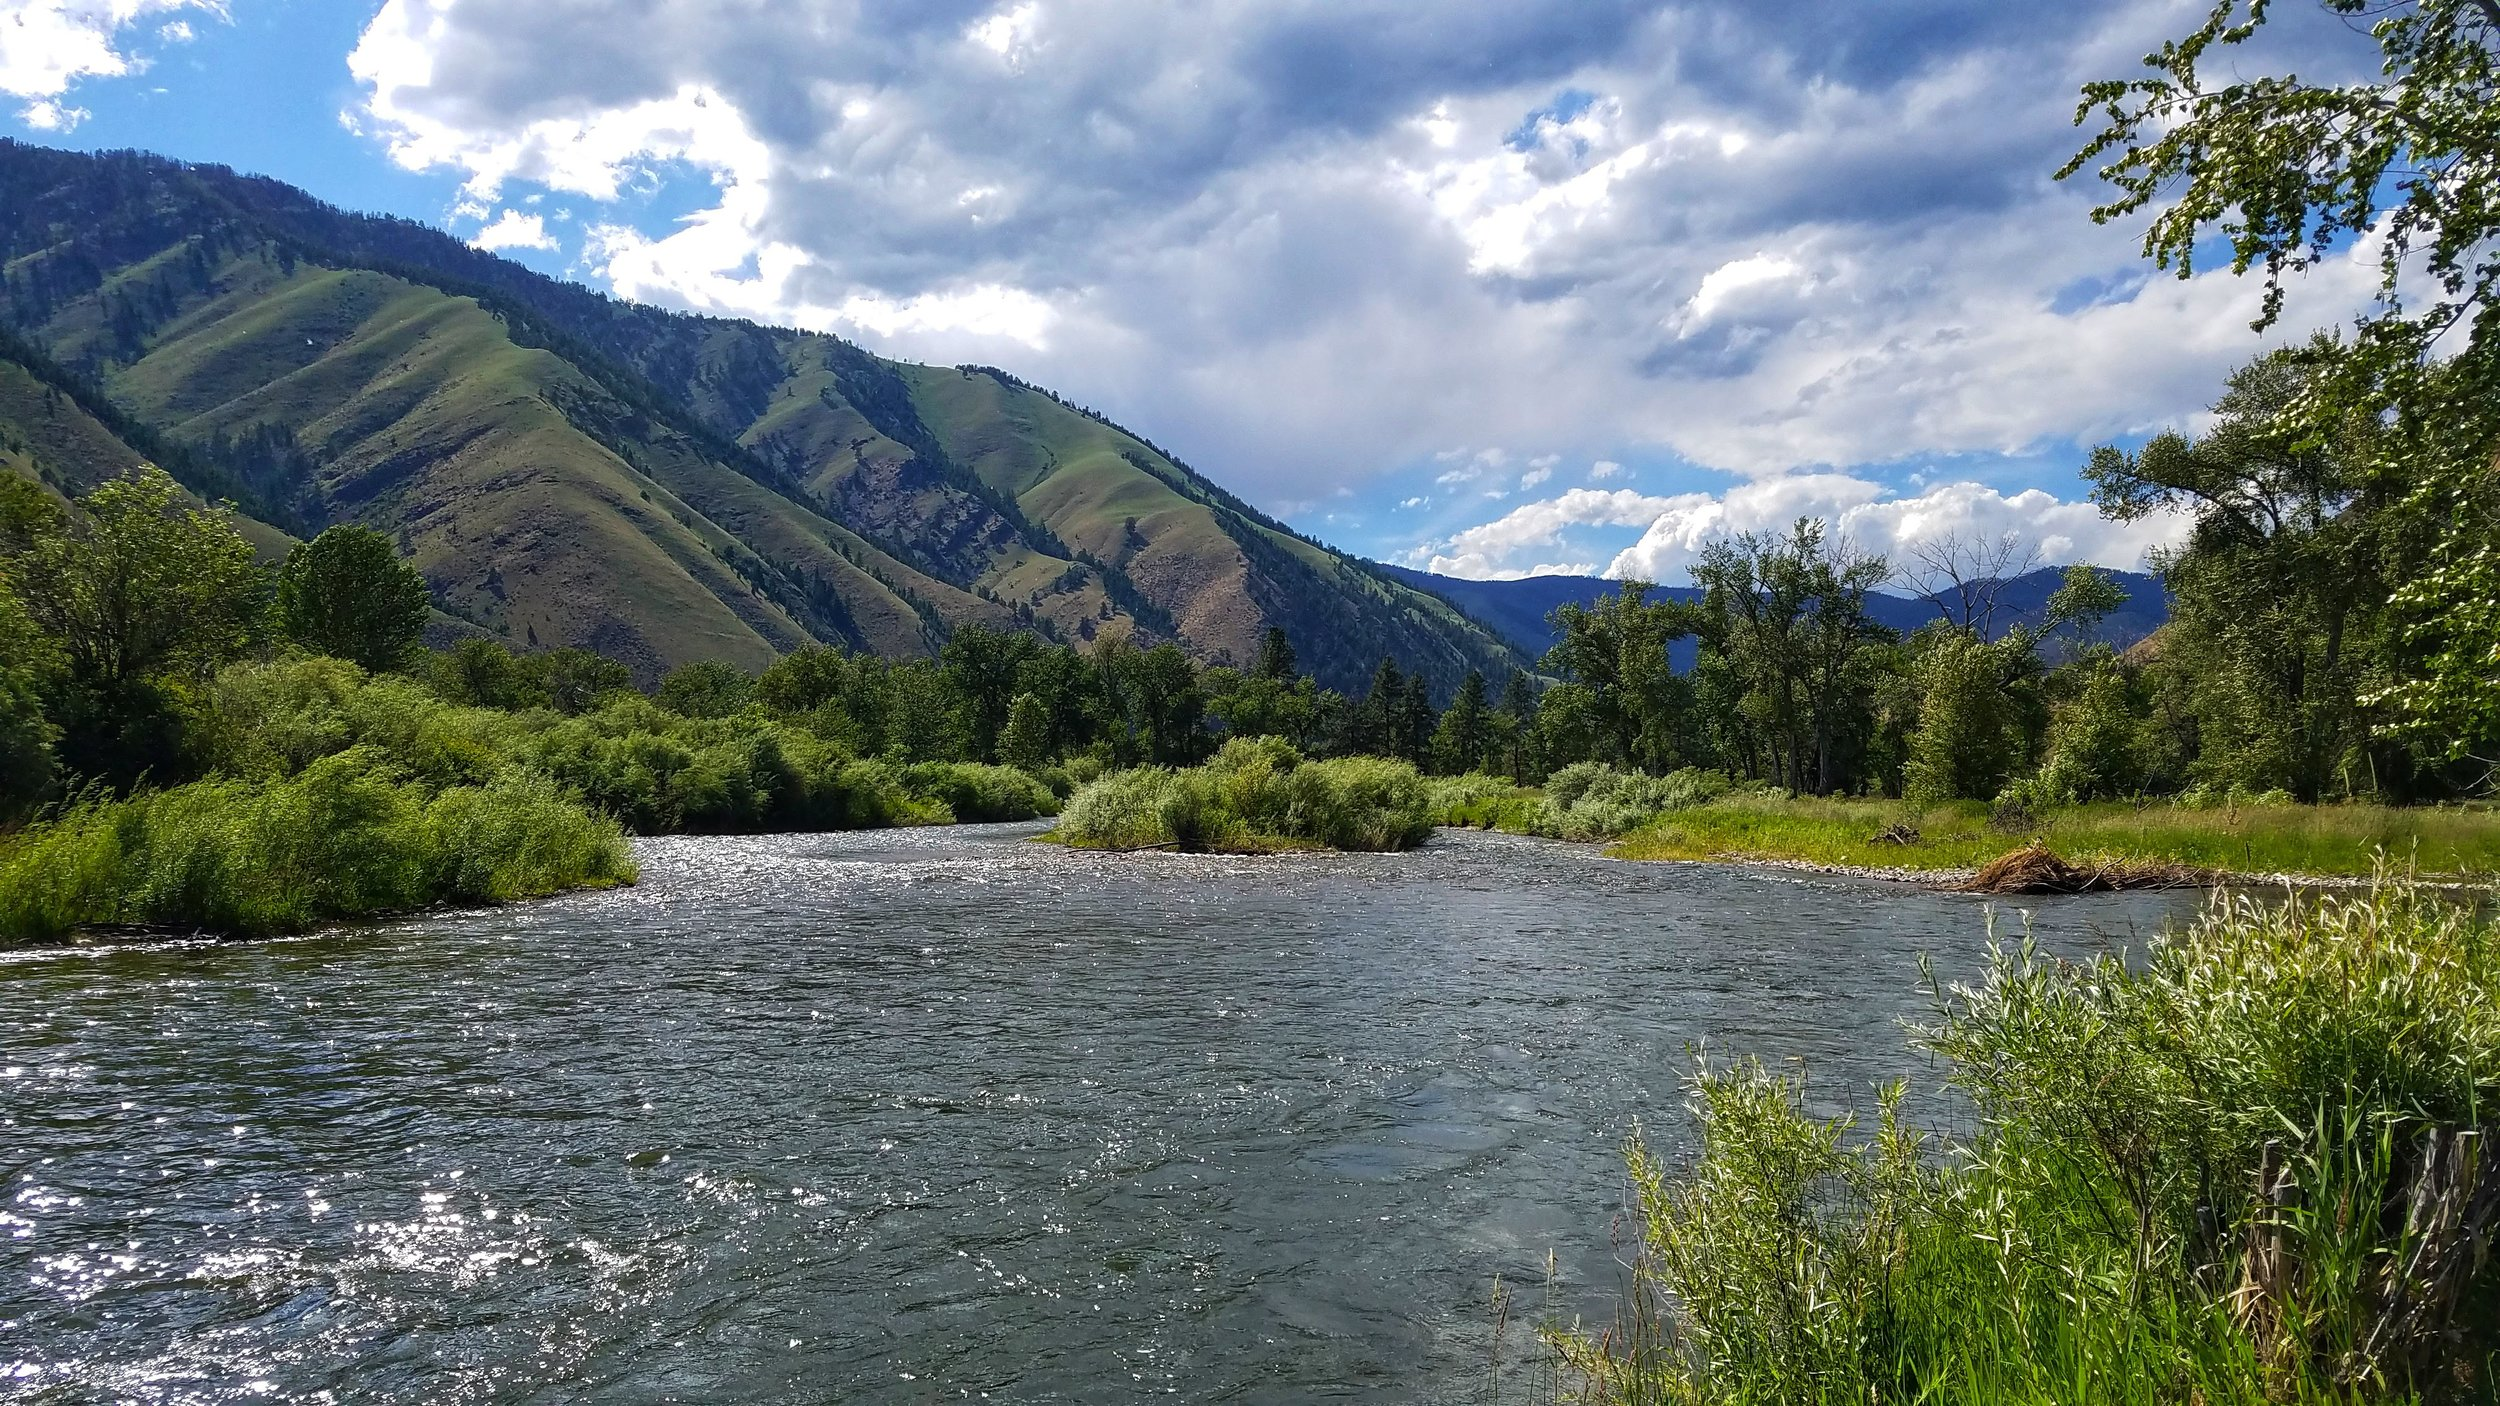 The beautiful views of the Salmon River